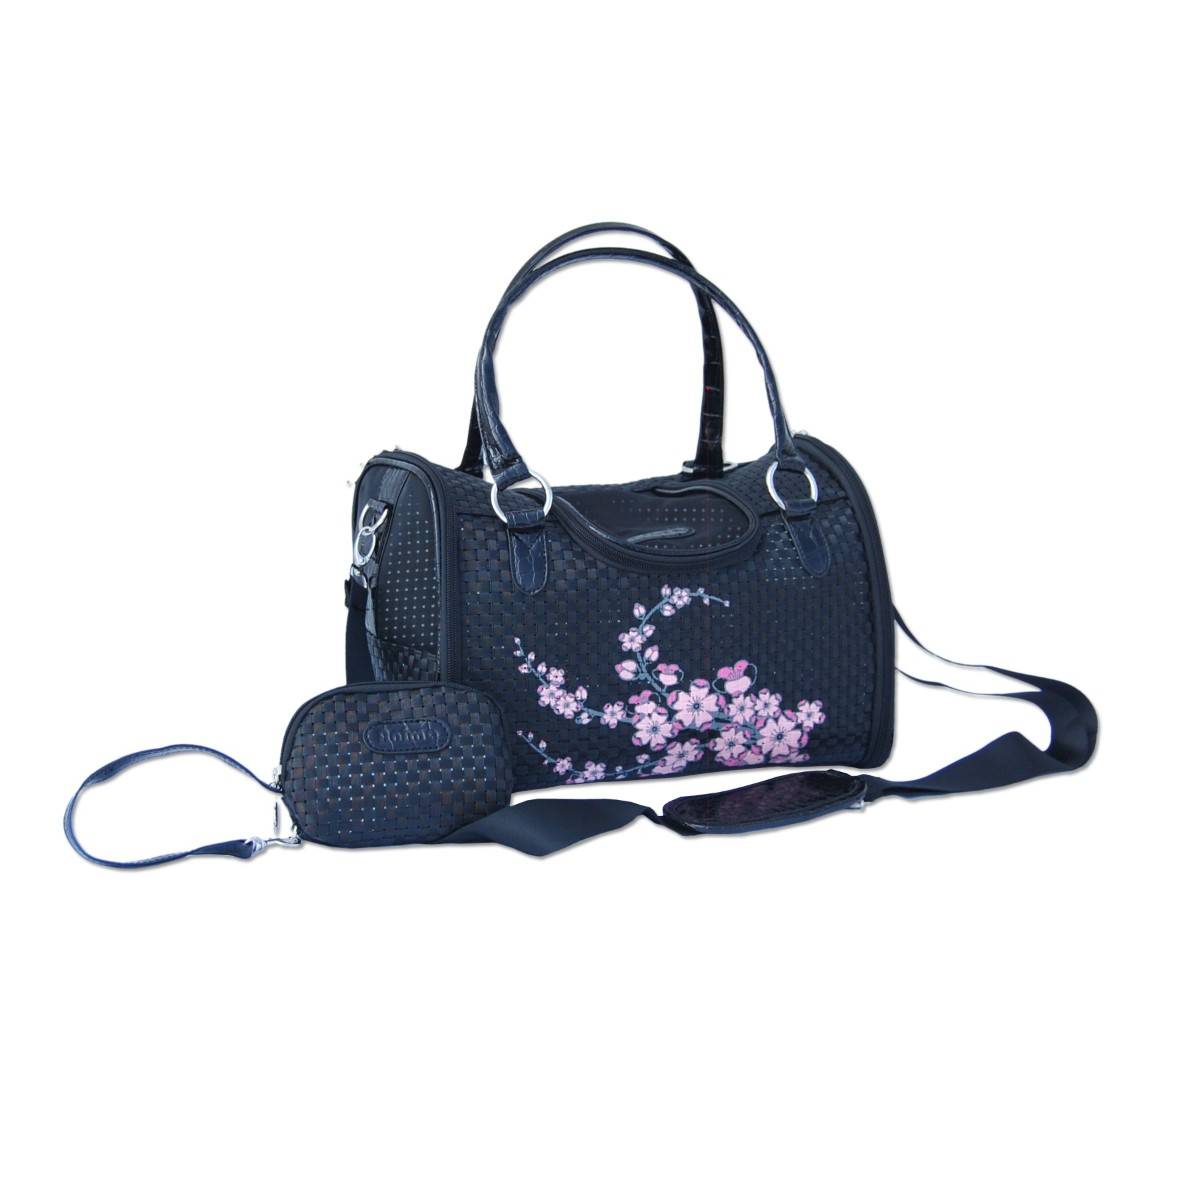 Weave pattern dog hand bag black